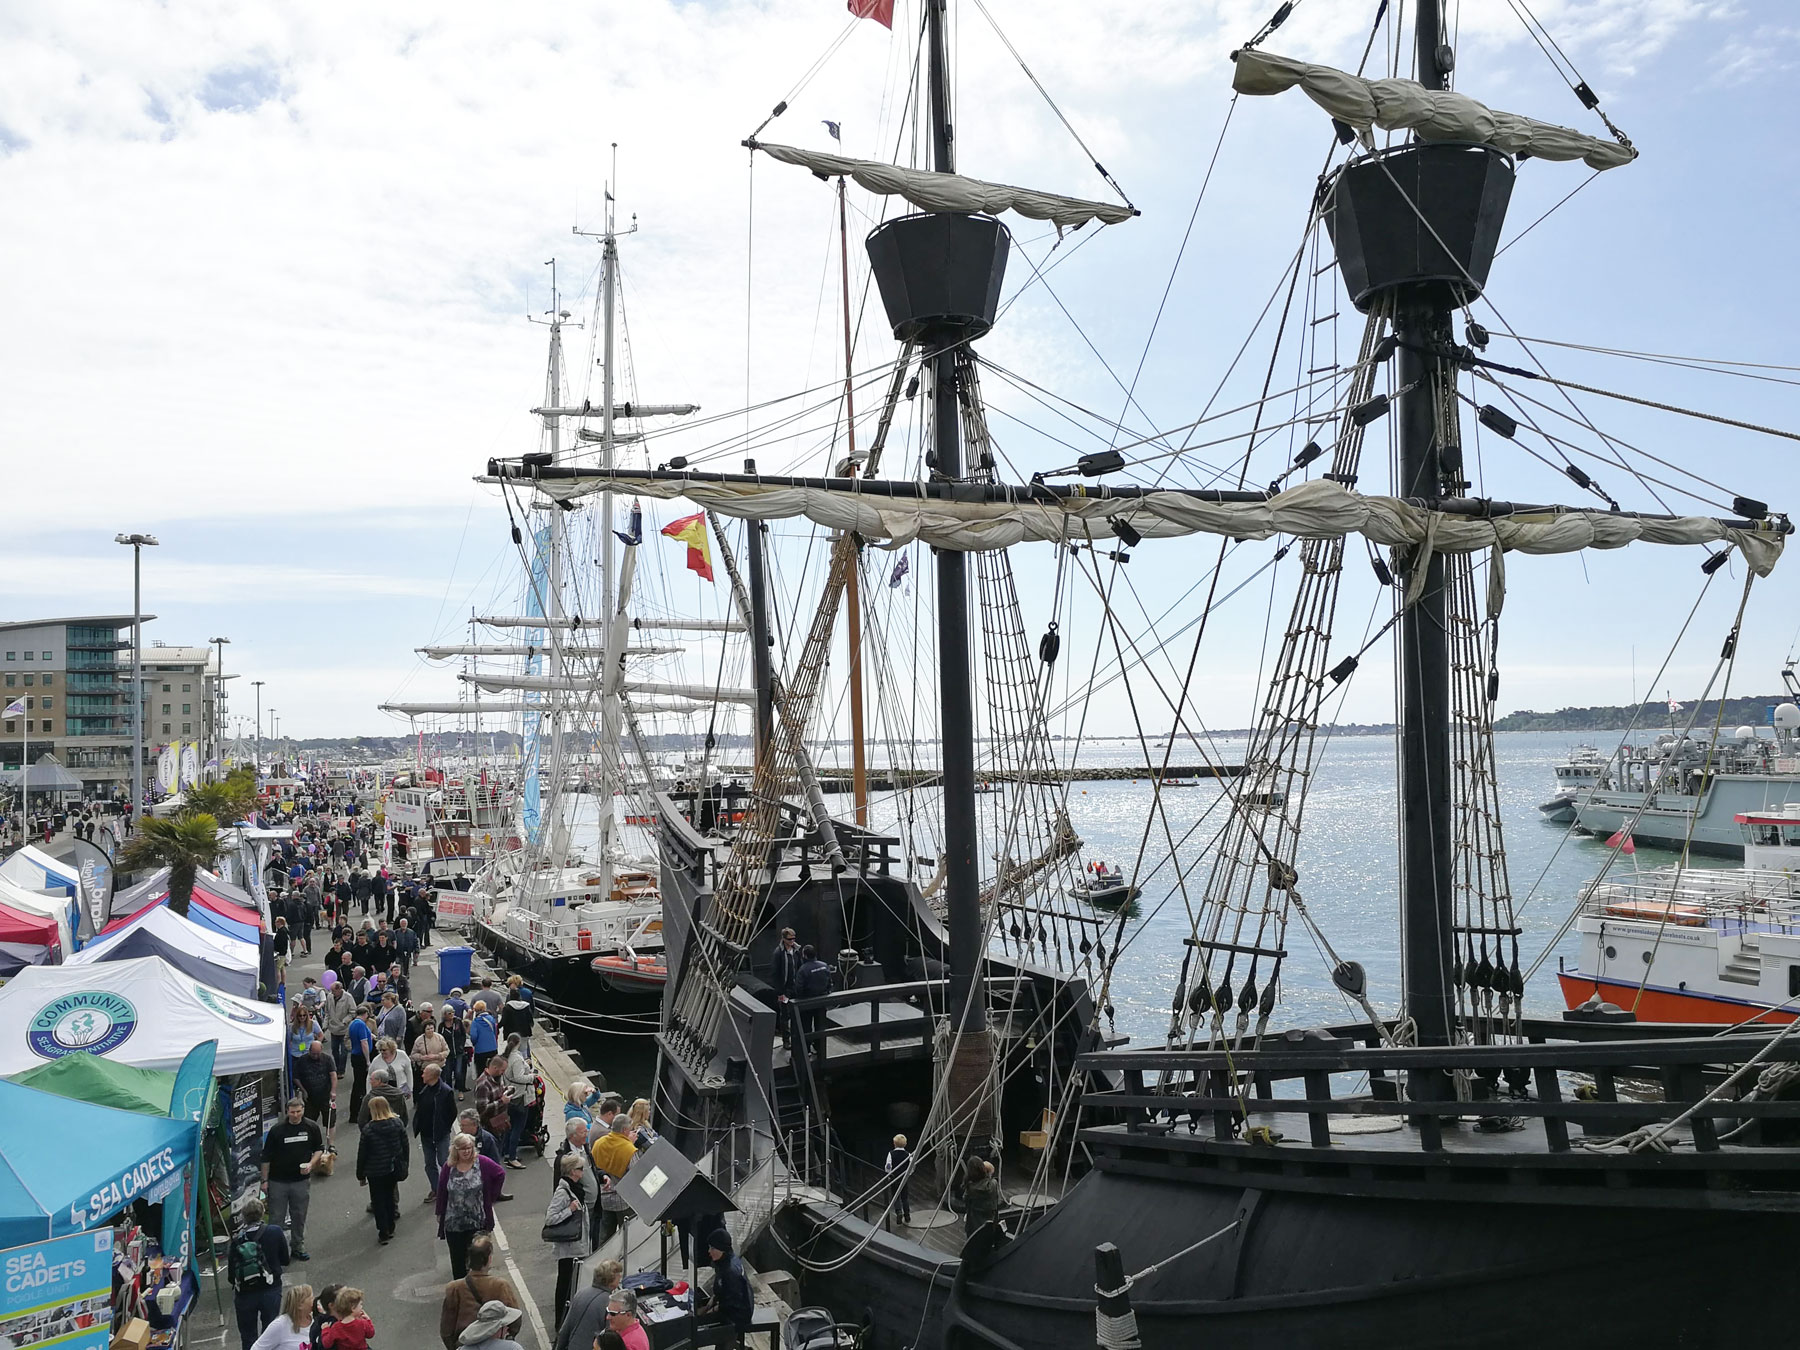 The Poole Harbour Boat Show Sees 30% Increase in Visitors